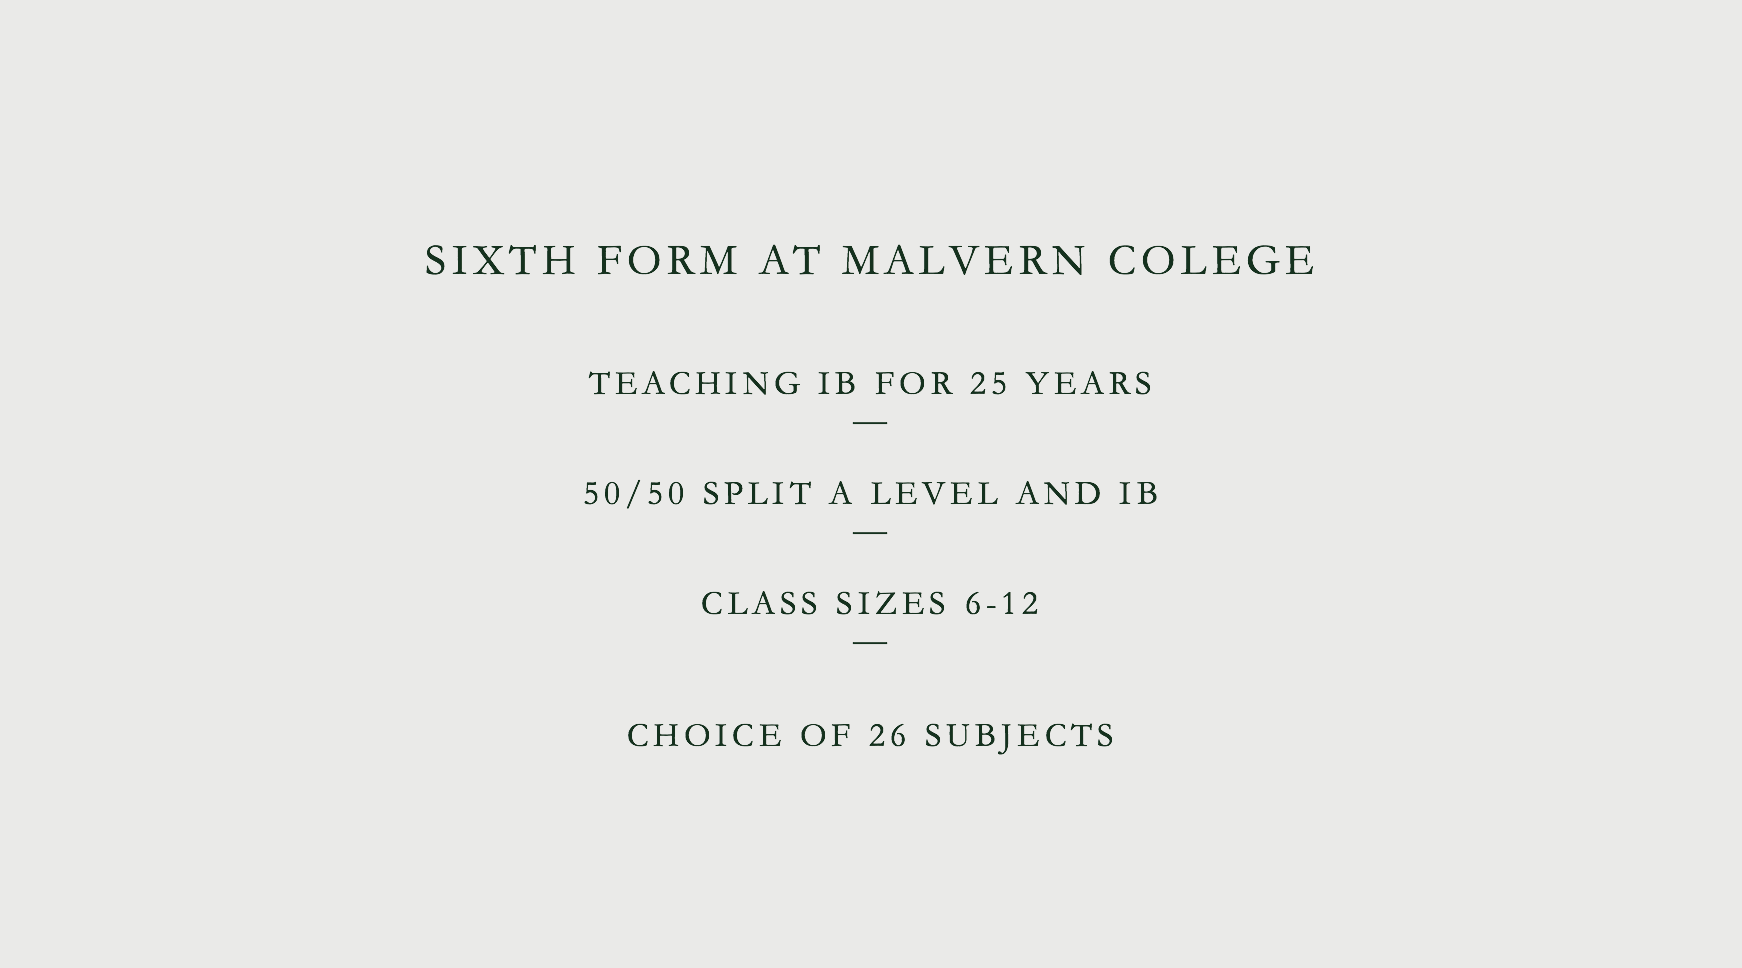 Sixth Form at Malvern College